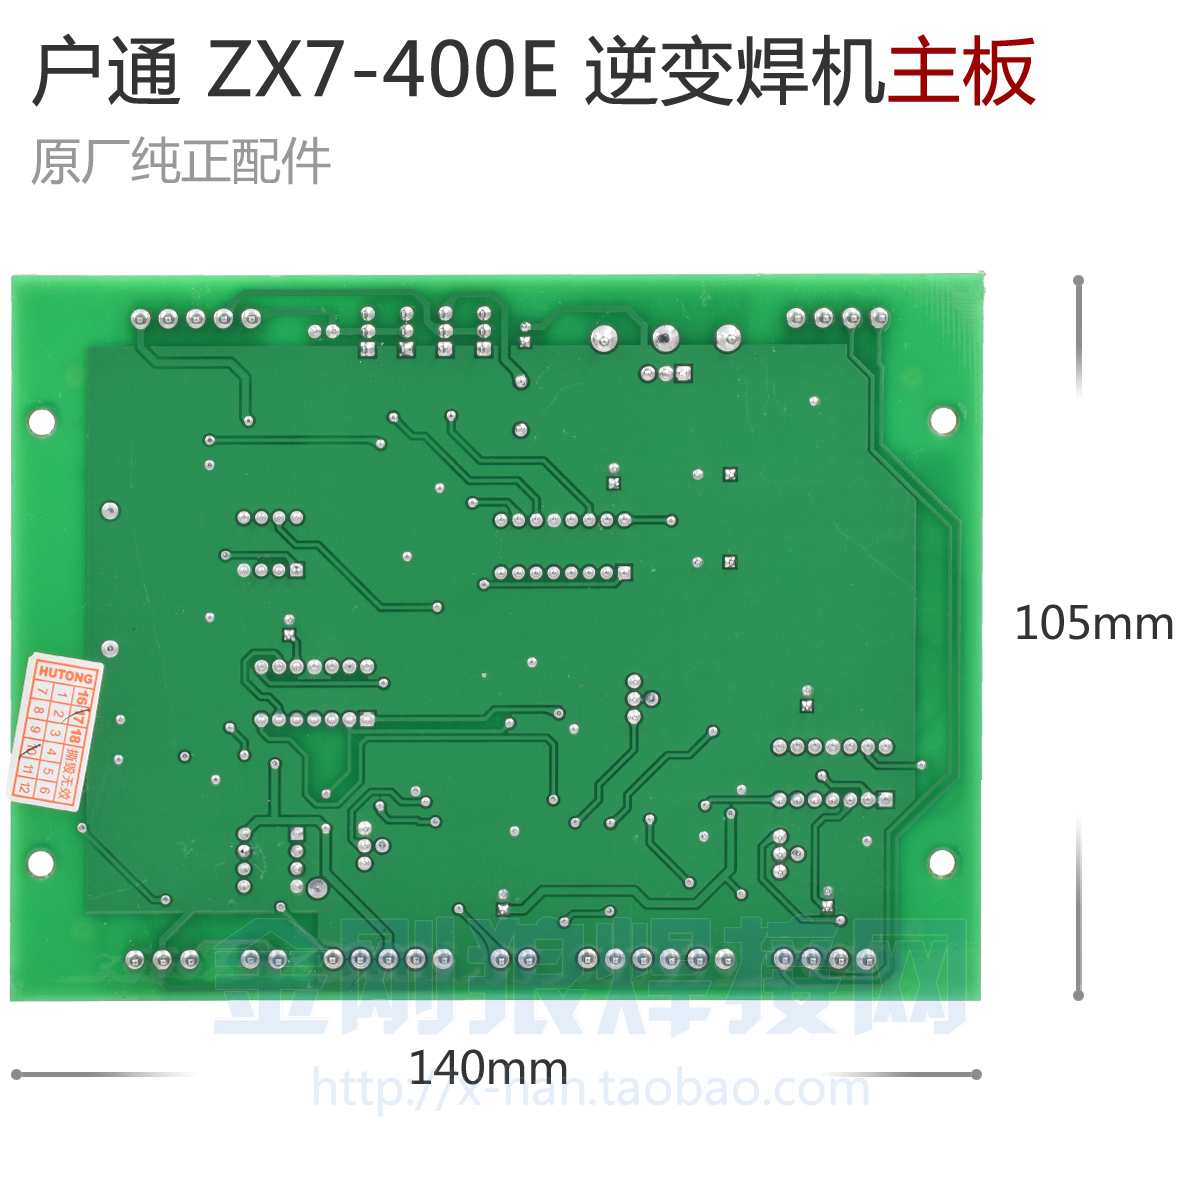 small resolution of aliexpress com buy ydt home zx7 400e igbt inverter welding machine mainboard control board circuit board fittings from reliable arc welders suppliers on